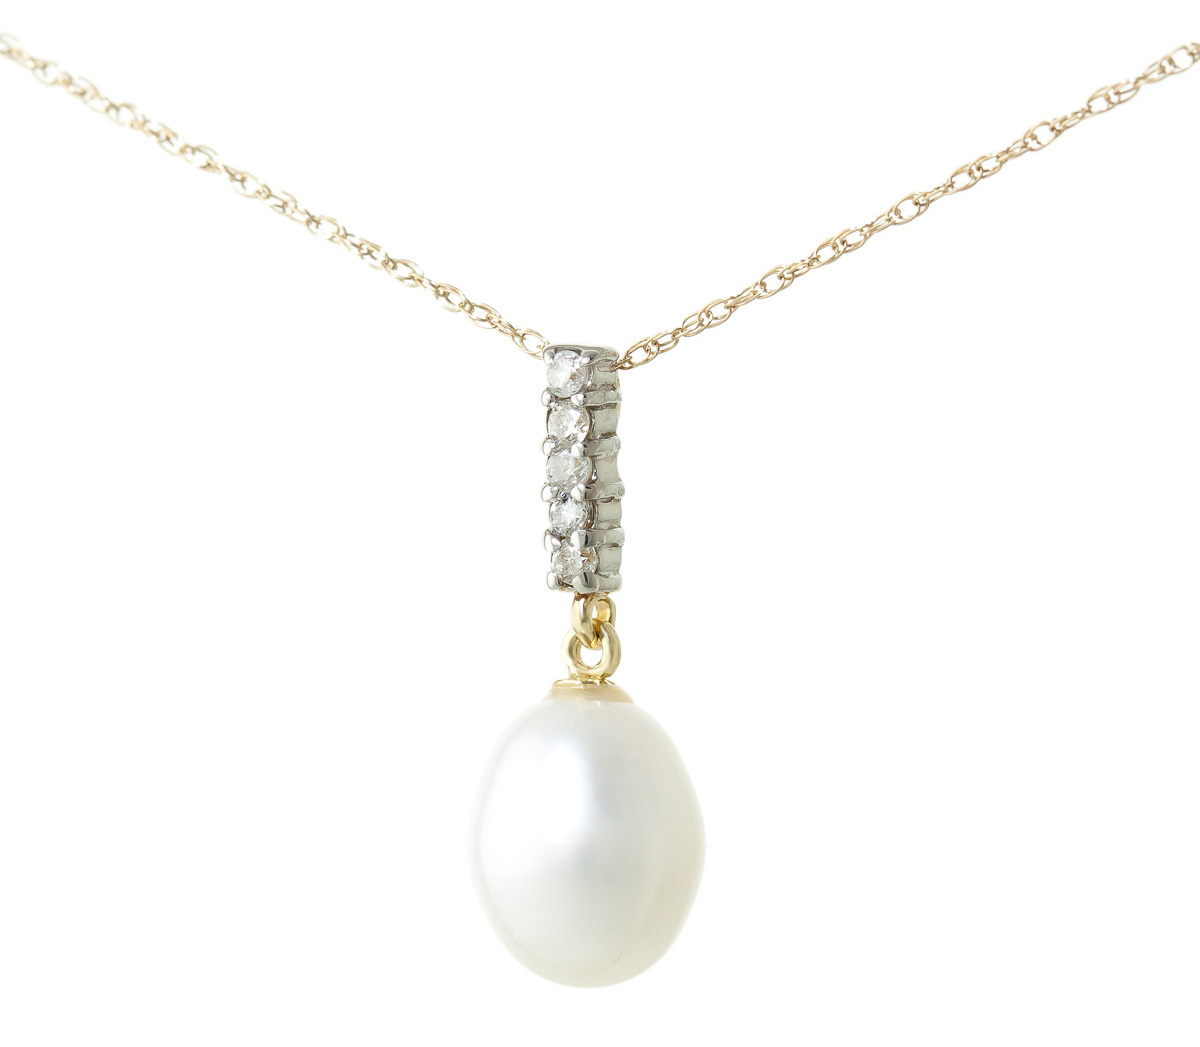 Oval Cut Pearl Pendant Necklace 4.08 ctw in 9ct Gold